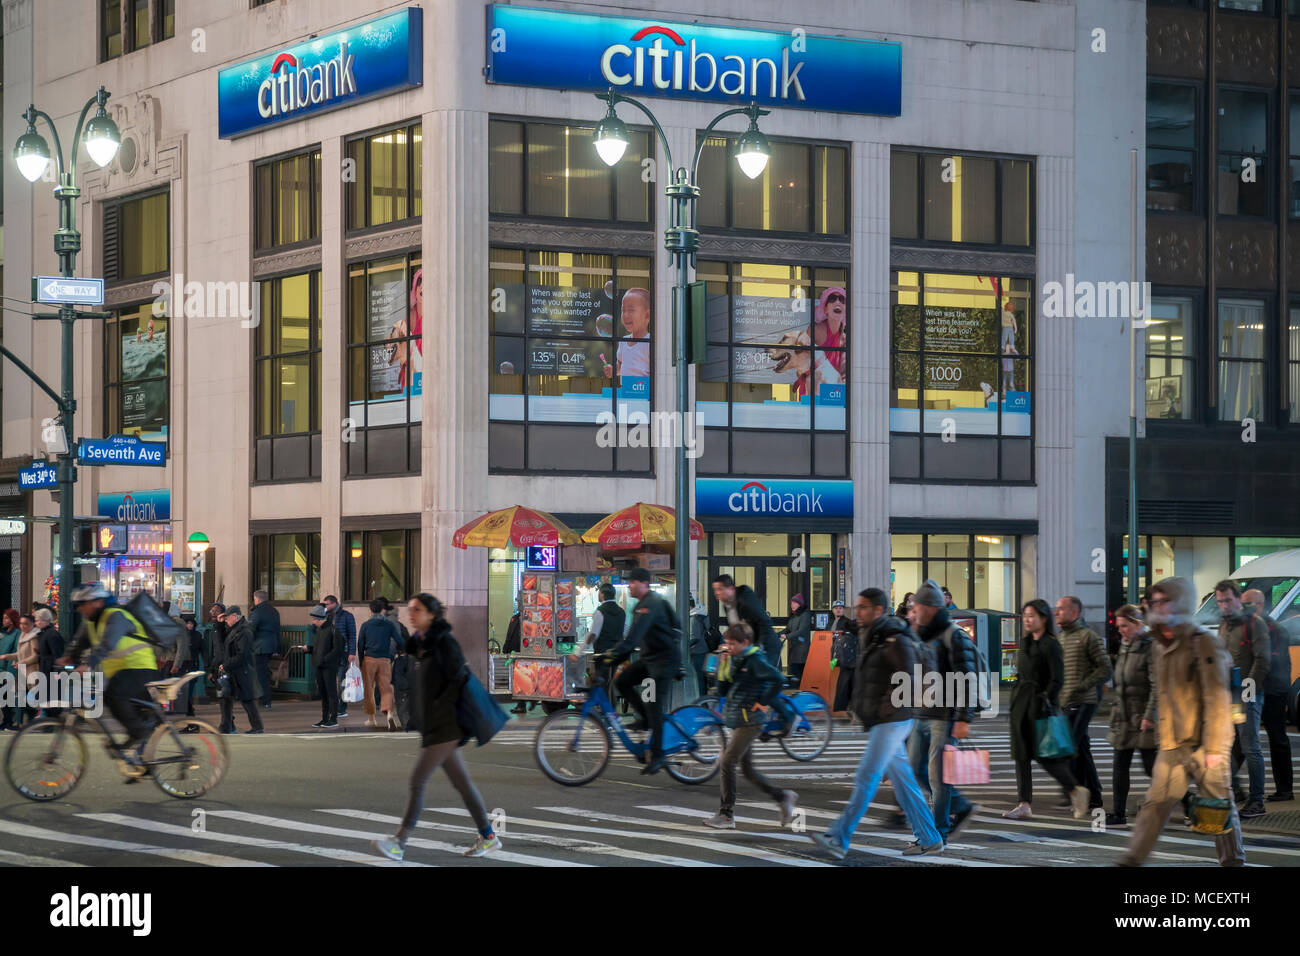 A Citibank Stock Photos Images Alamy Wiring Instructions For Branch In The Herald Square Area New York On Tuesday April 10